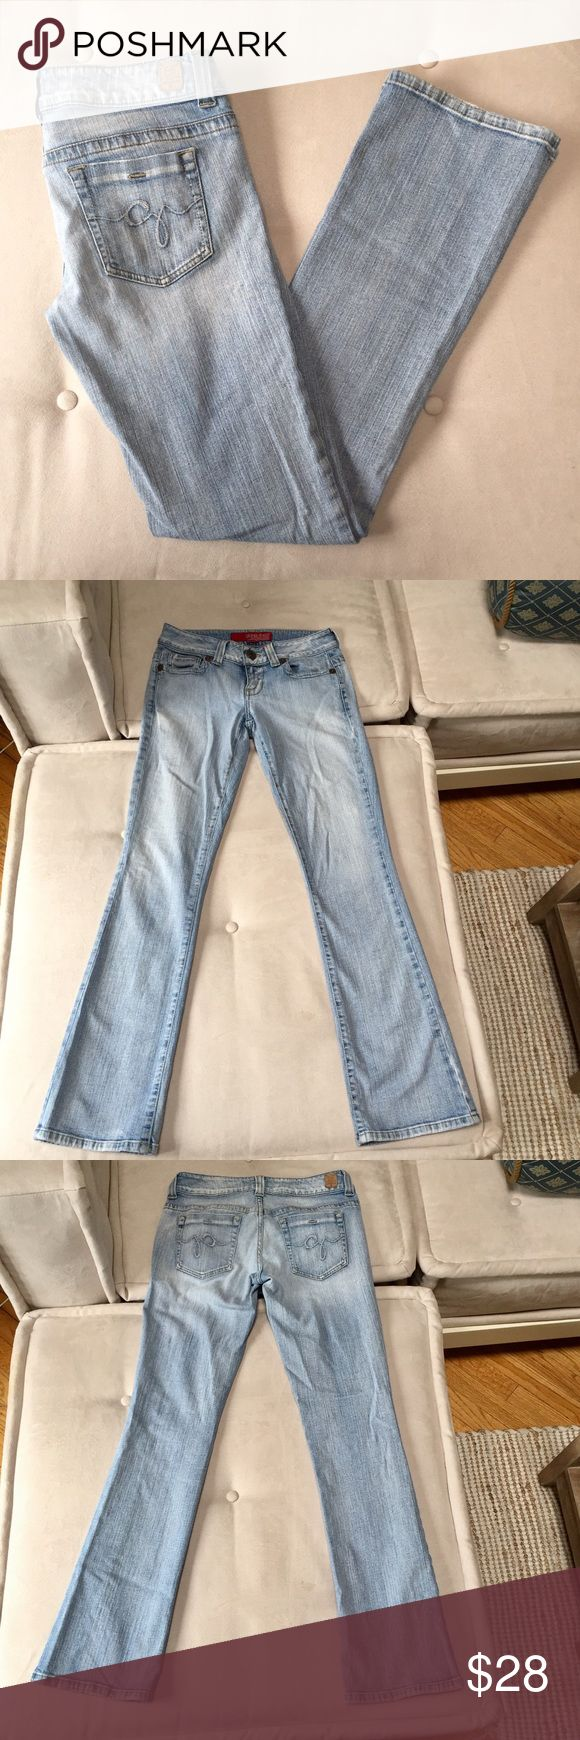 "Guess Daredevil Stretch Boot Cut Jeans 98% cotton/ 2% spandex.  Measures:  waist 14"", inseam 32"", front rise 7"", hem 7 3/4"", zipper 2"".  Very good condition- no holes, tears or stains. Lightly distressed back hems (see photo). Guess Jeans Boot Cut"